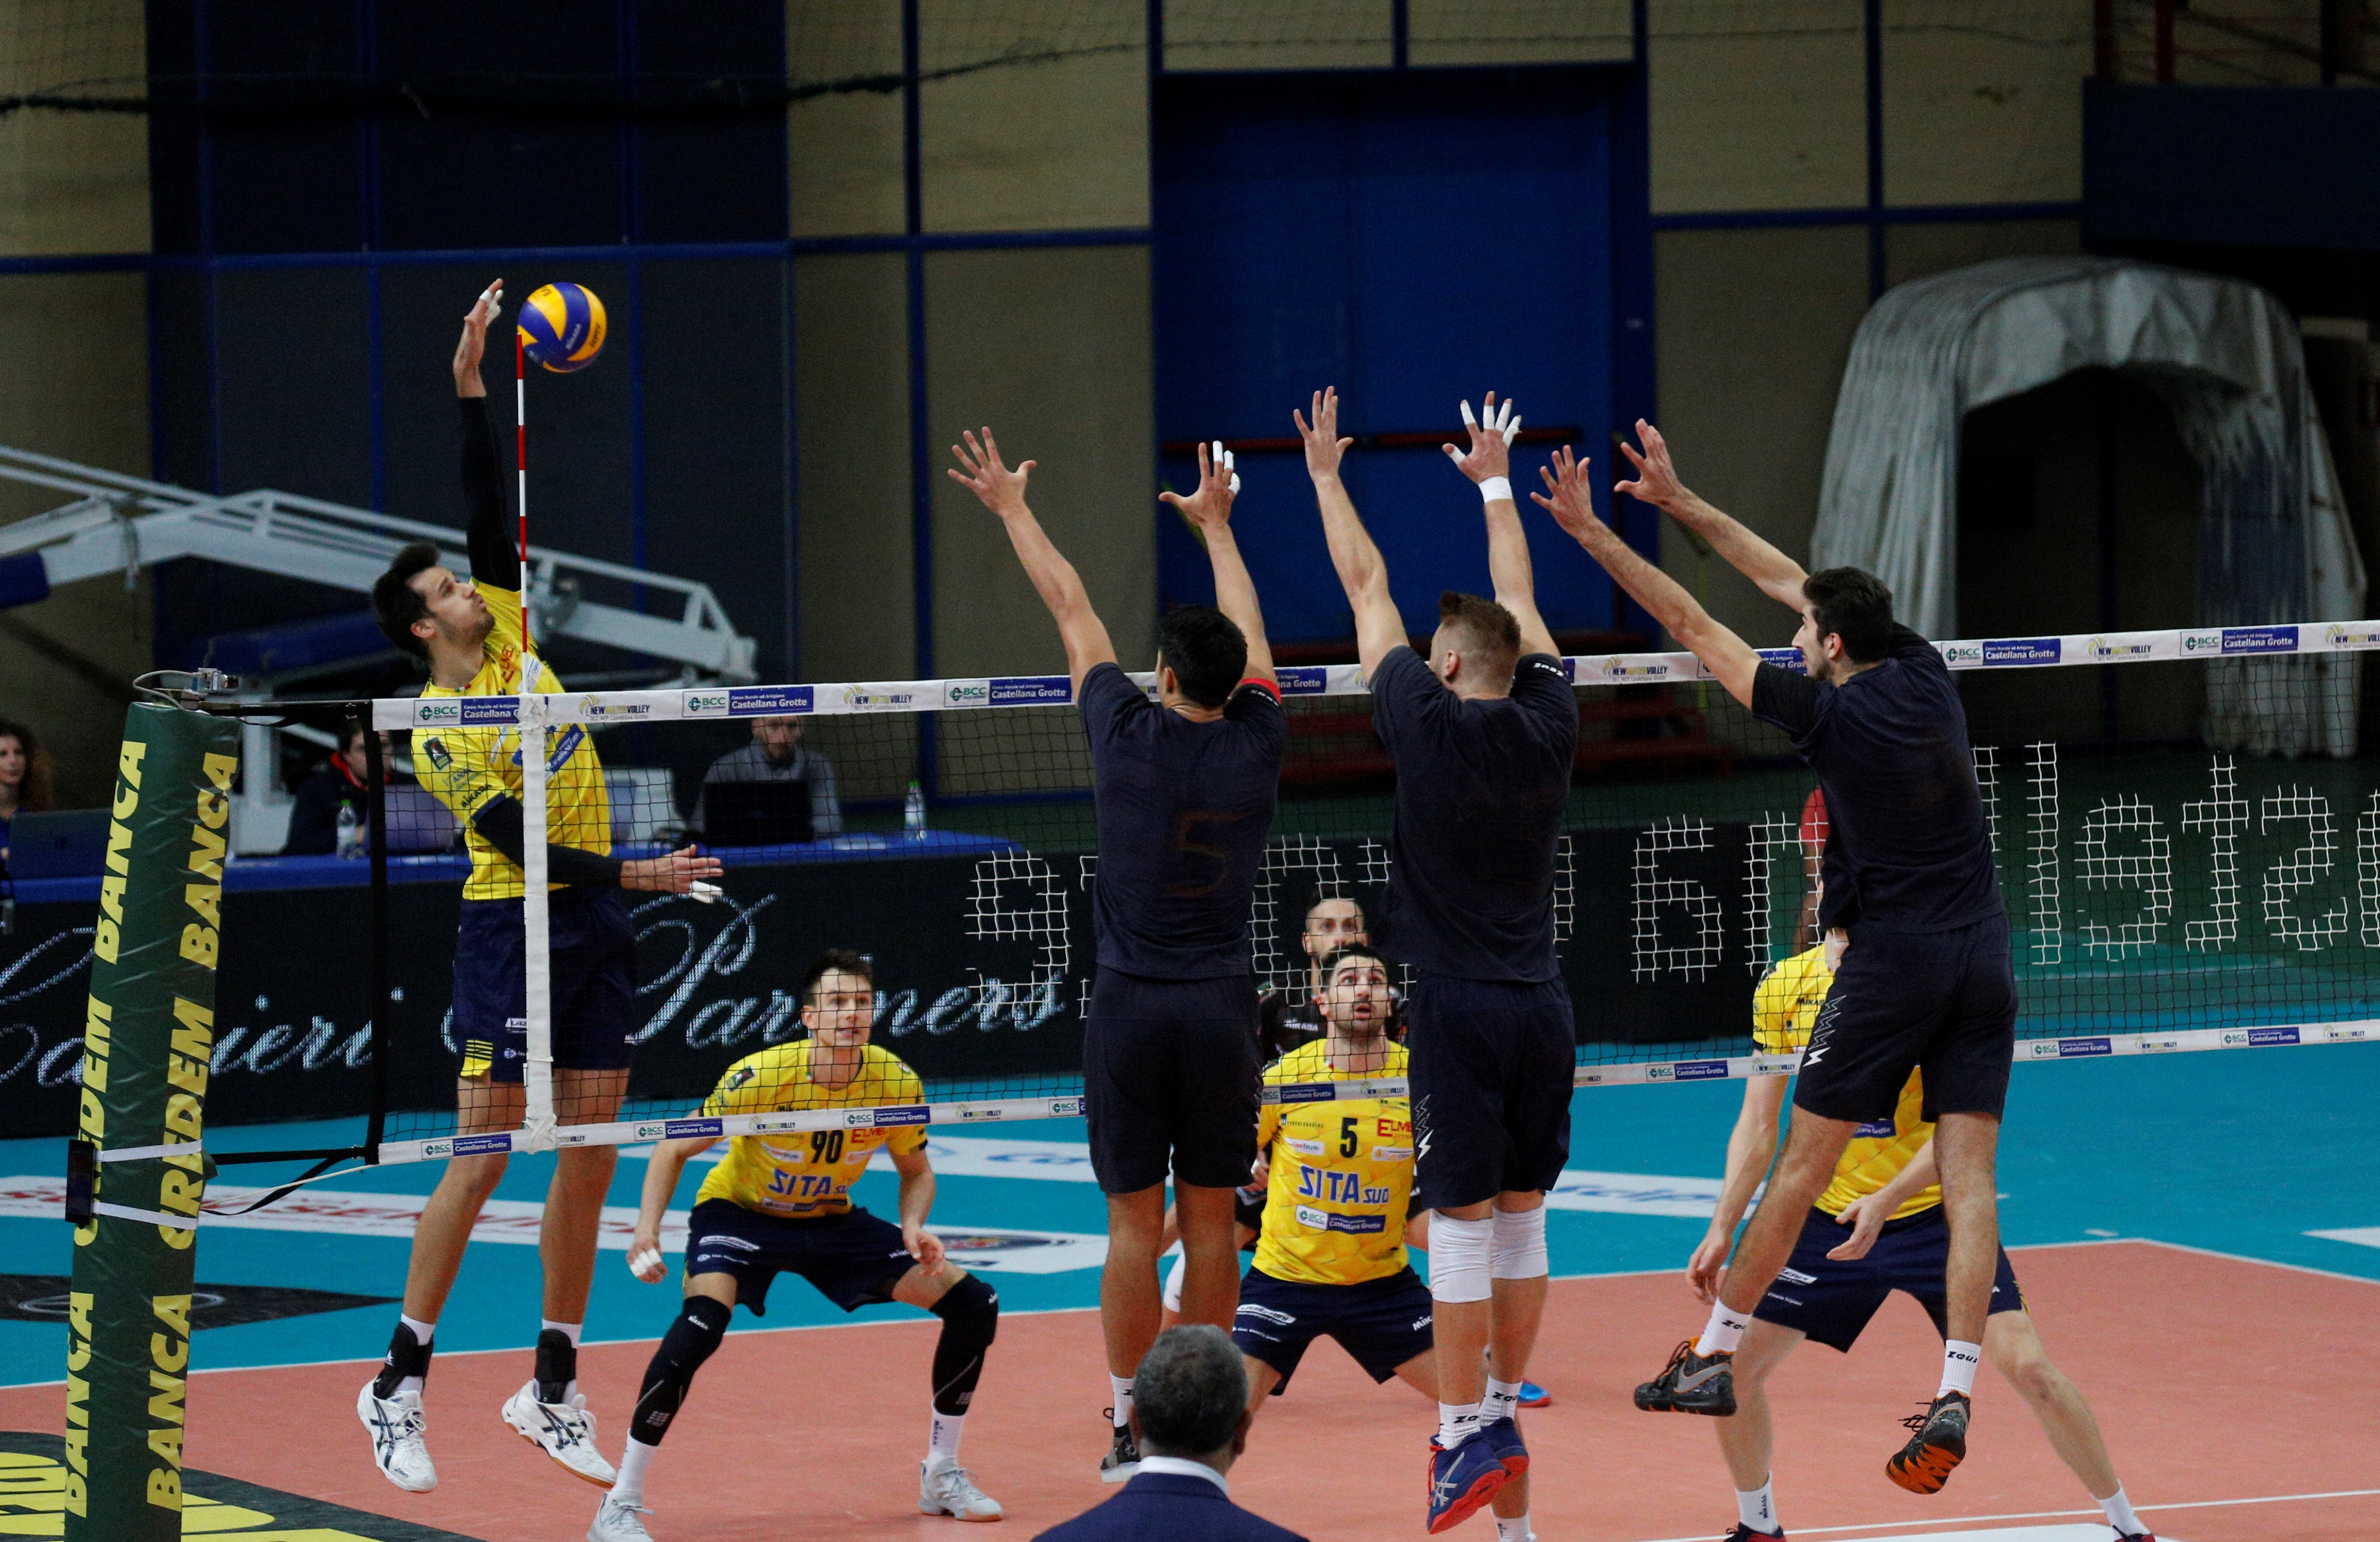 VOLLEY Sora, pagina nera per la SuperLega